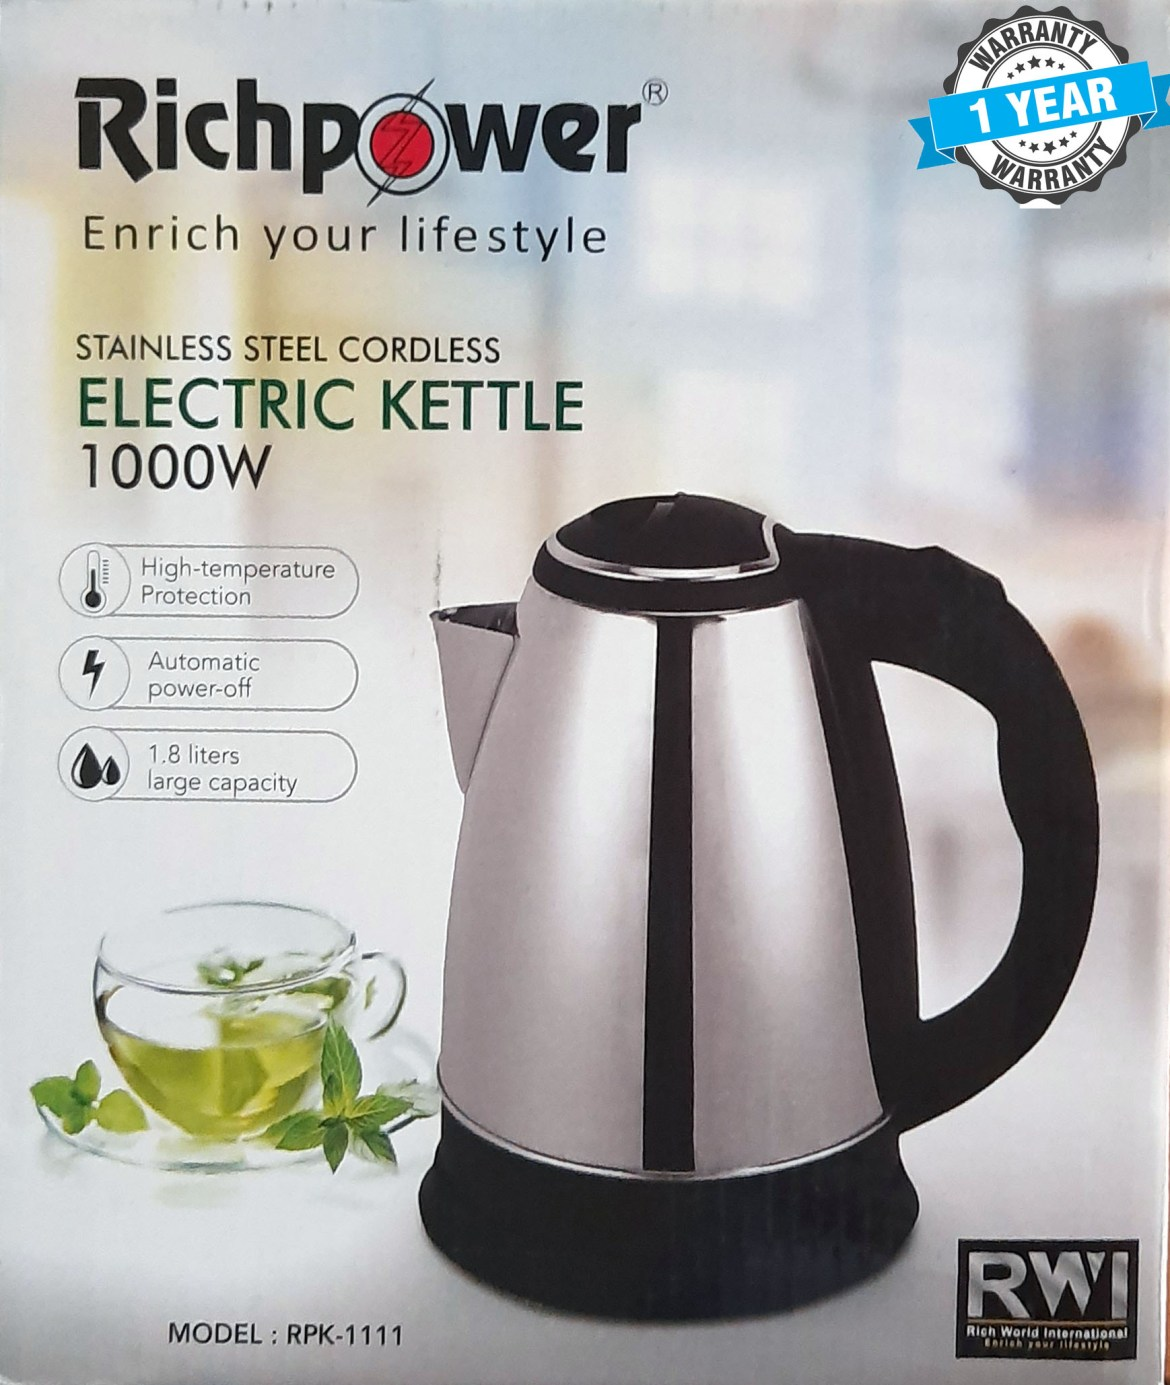 RichPower Stainless Steel Cordless Electric Kettle 1.8L 1000W RPK-1111: Buy  Sell Online @ Best Prices in SriLanka | Daraz.lk